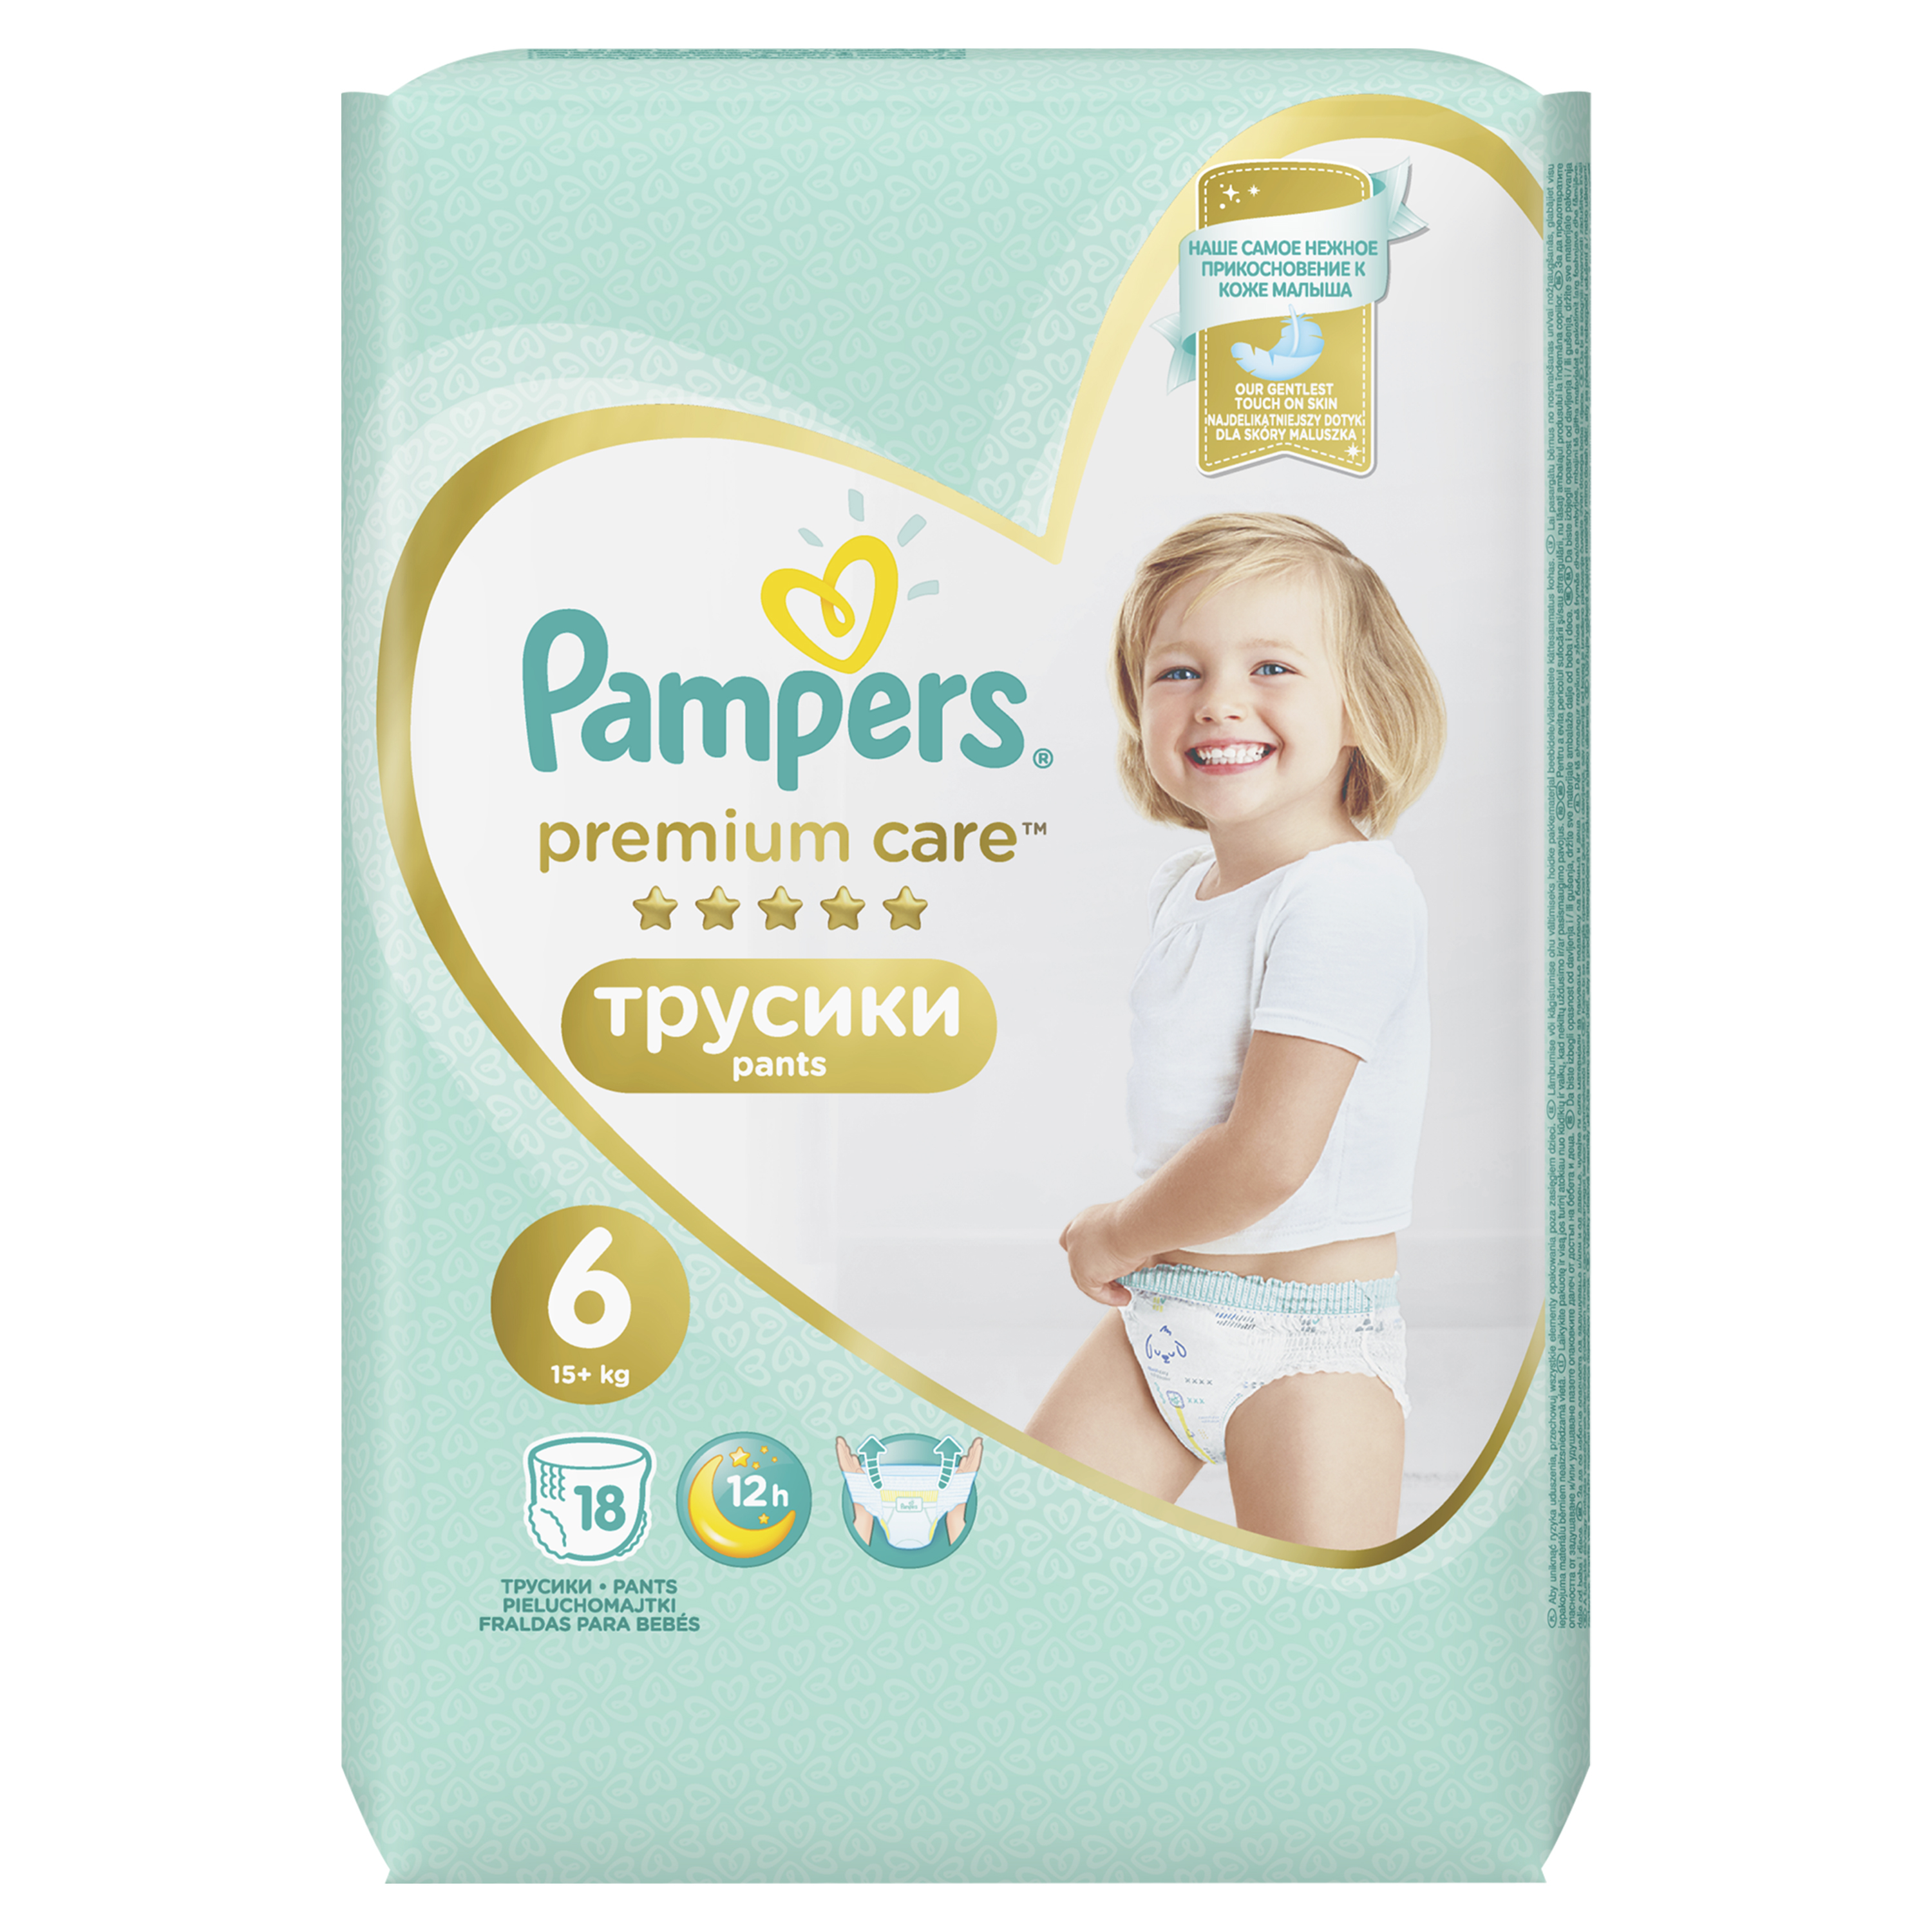 Подгузники-трусики Pampers Трусики-подгузники Pampers Premium Care Pants Extra Large 6 (от 15 кг) 18 шт. wltoys 12428 12423 1 12 rc car spare parts 12428 0091 12428 0133 front rear diff gear differential gear complete